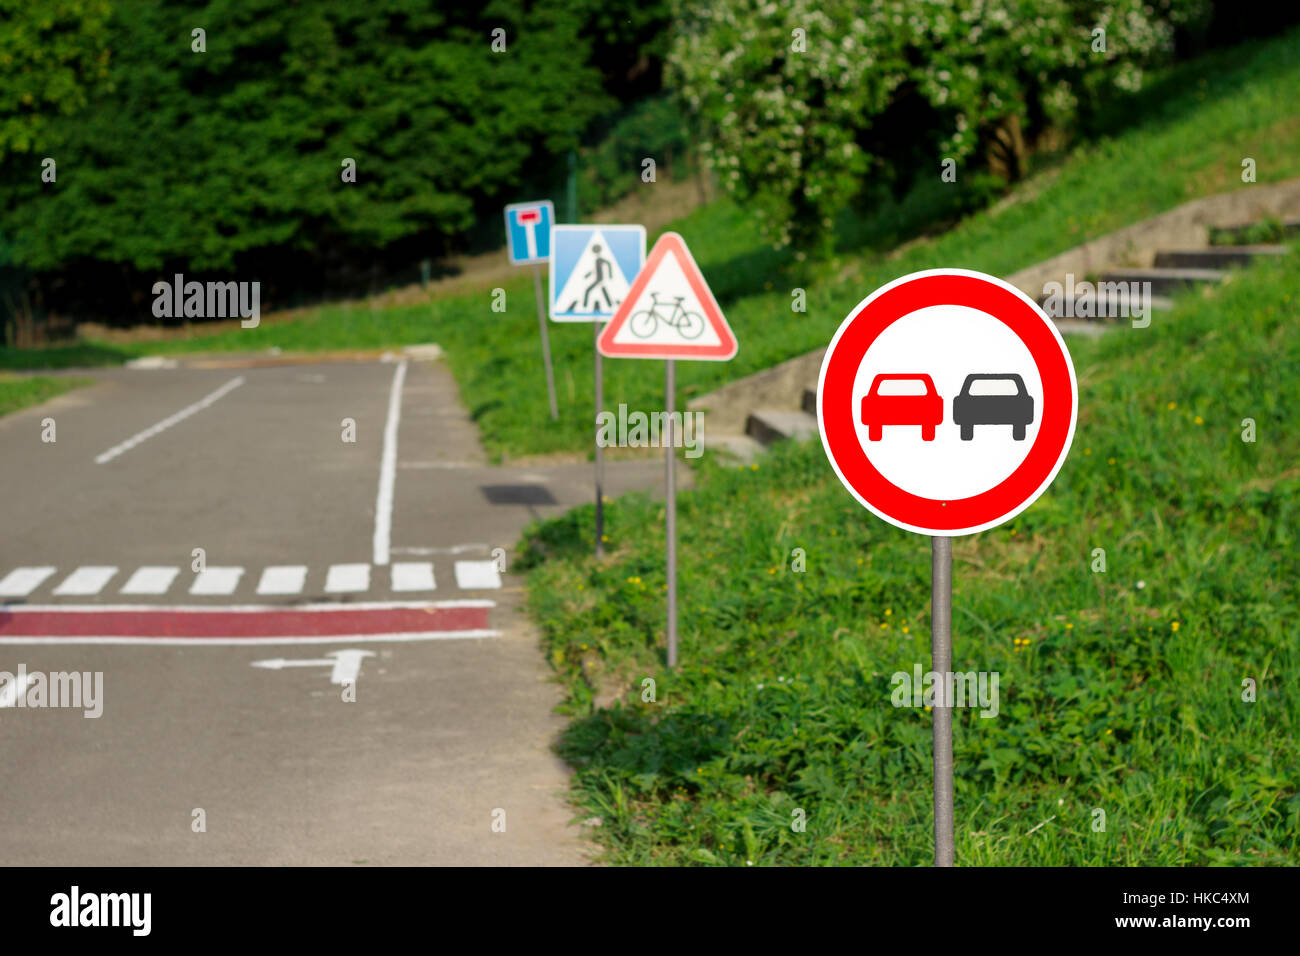 no overtaking, no passing, cyclists, pedestrians, dead end signs on the training kids track in the park - Stock Image